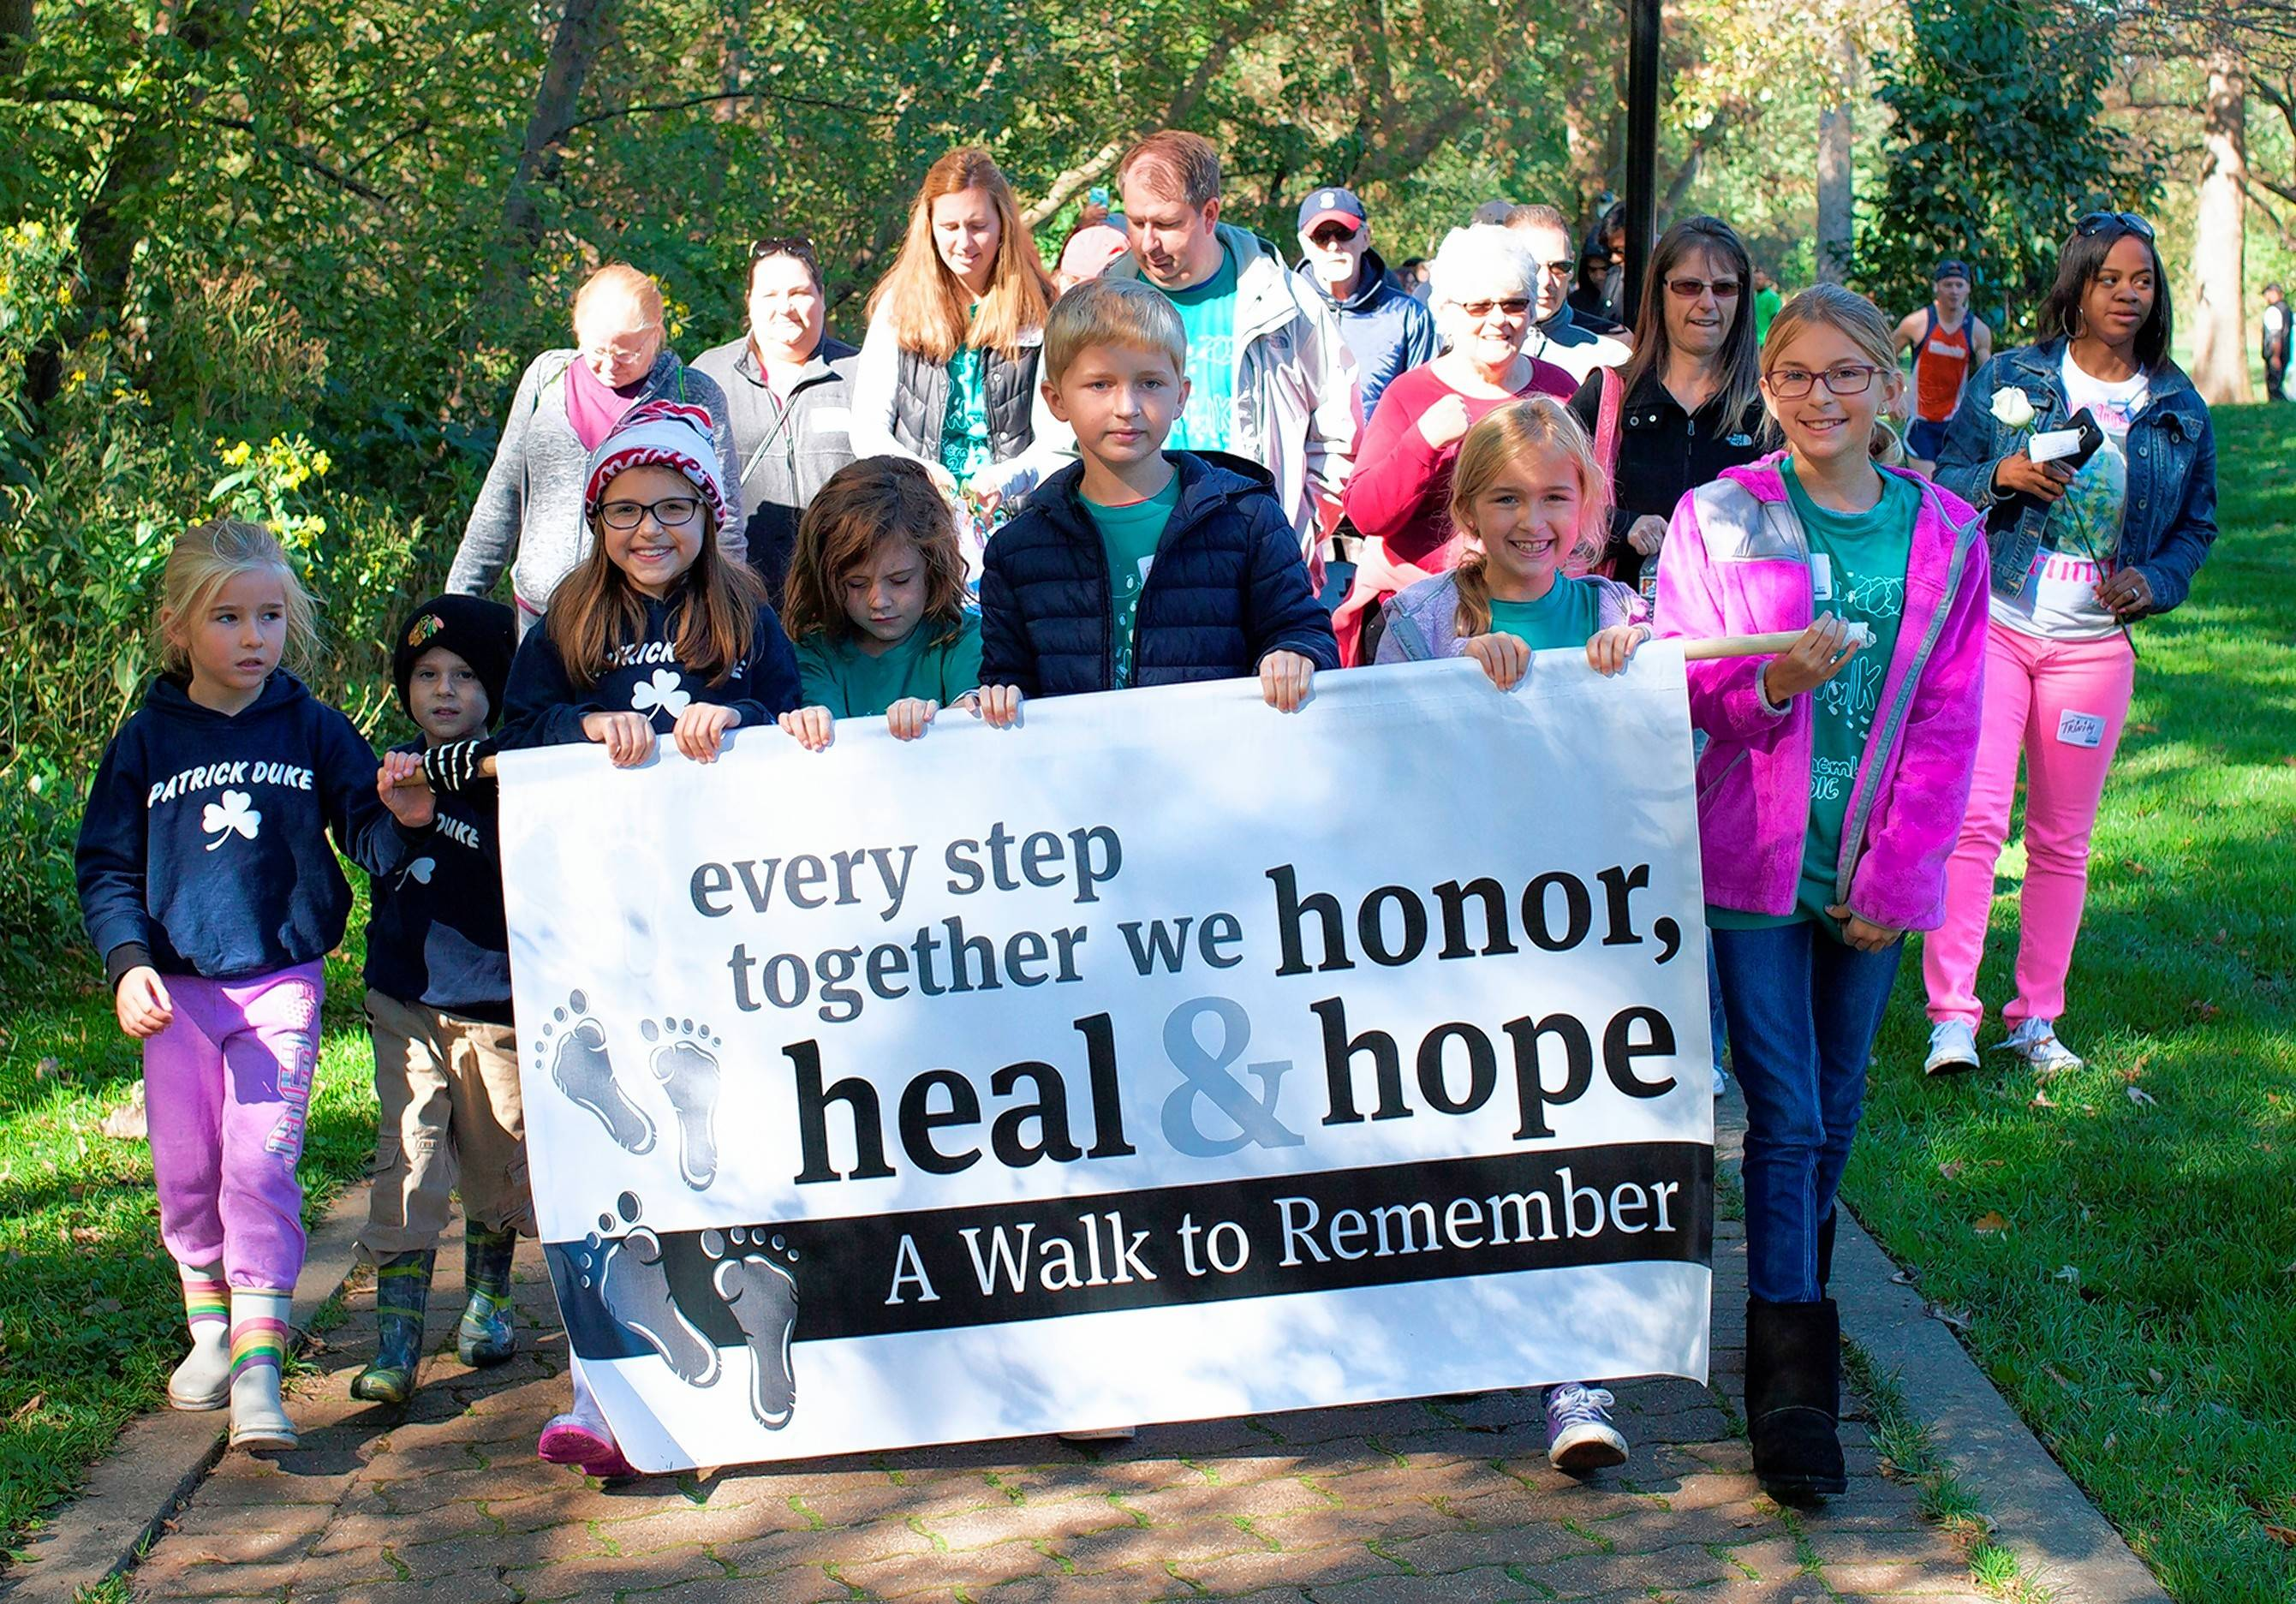 Carrying the banner to lead the 12th annual A Walk To Remember in 2016 were, from left, Kelsey, Danny and Reilly Fitzgerald of Naperville; Nora Mabrey of Naperville; and Ryan, Hannah and Hailey Mitchell of Aurora. The walk raises funds for the SHARE program, a support group for families who have lost a baby, at Edward Hospital in Naperville.